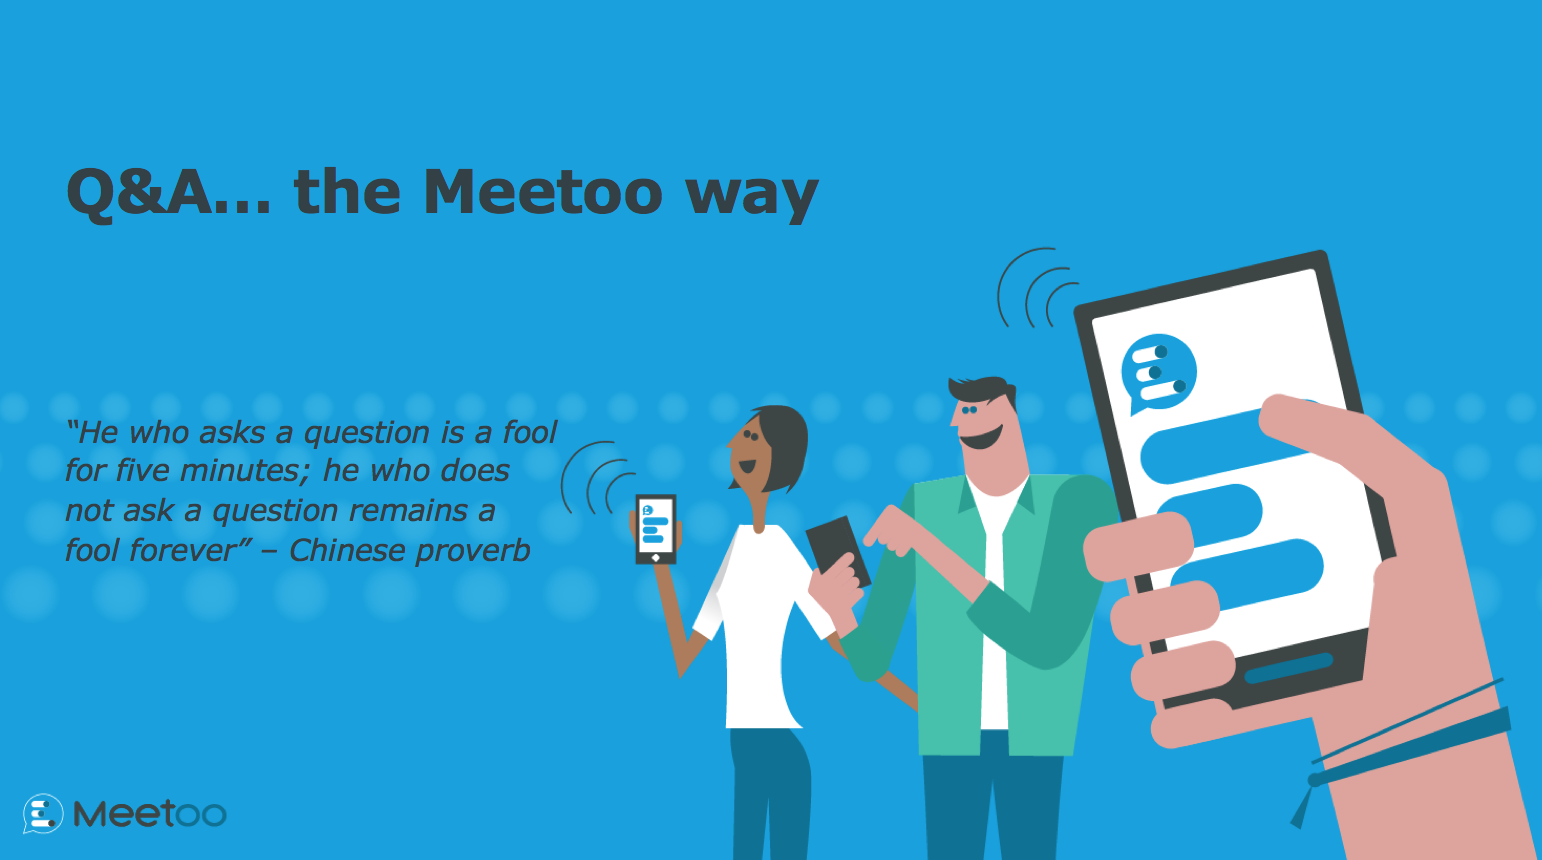 Running Q&A the Meetoo Way